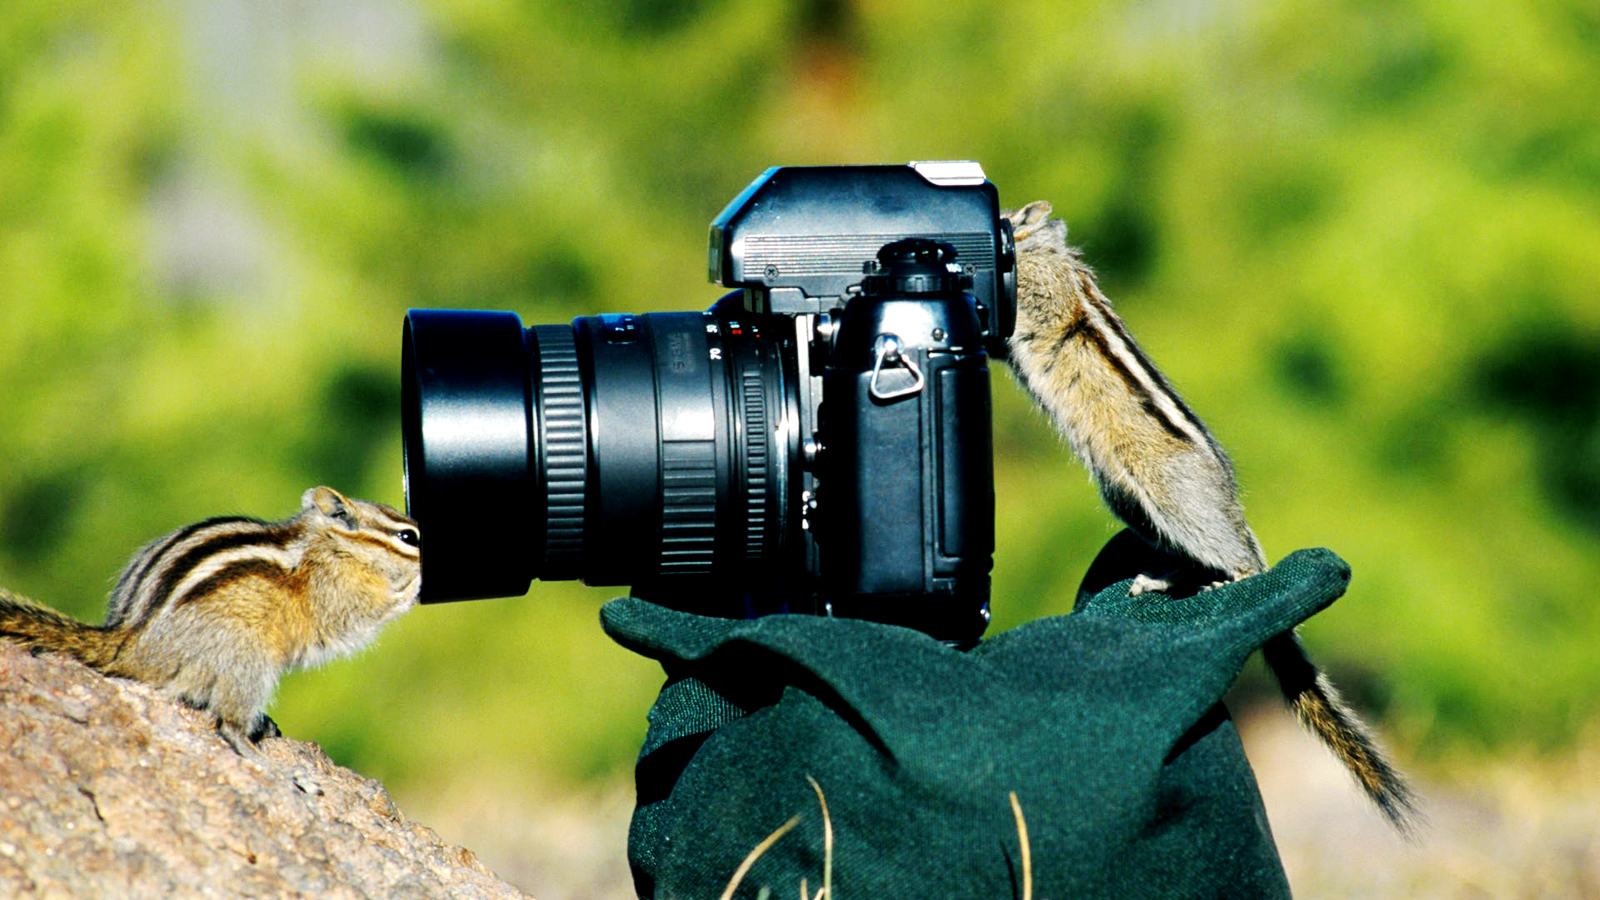 Chipmunks funny hd wallpapers hd wallpapers backgrounds - Foto in camera ...